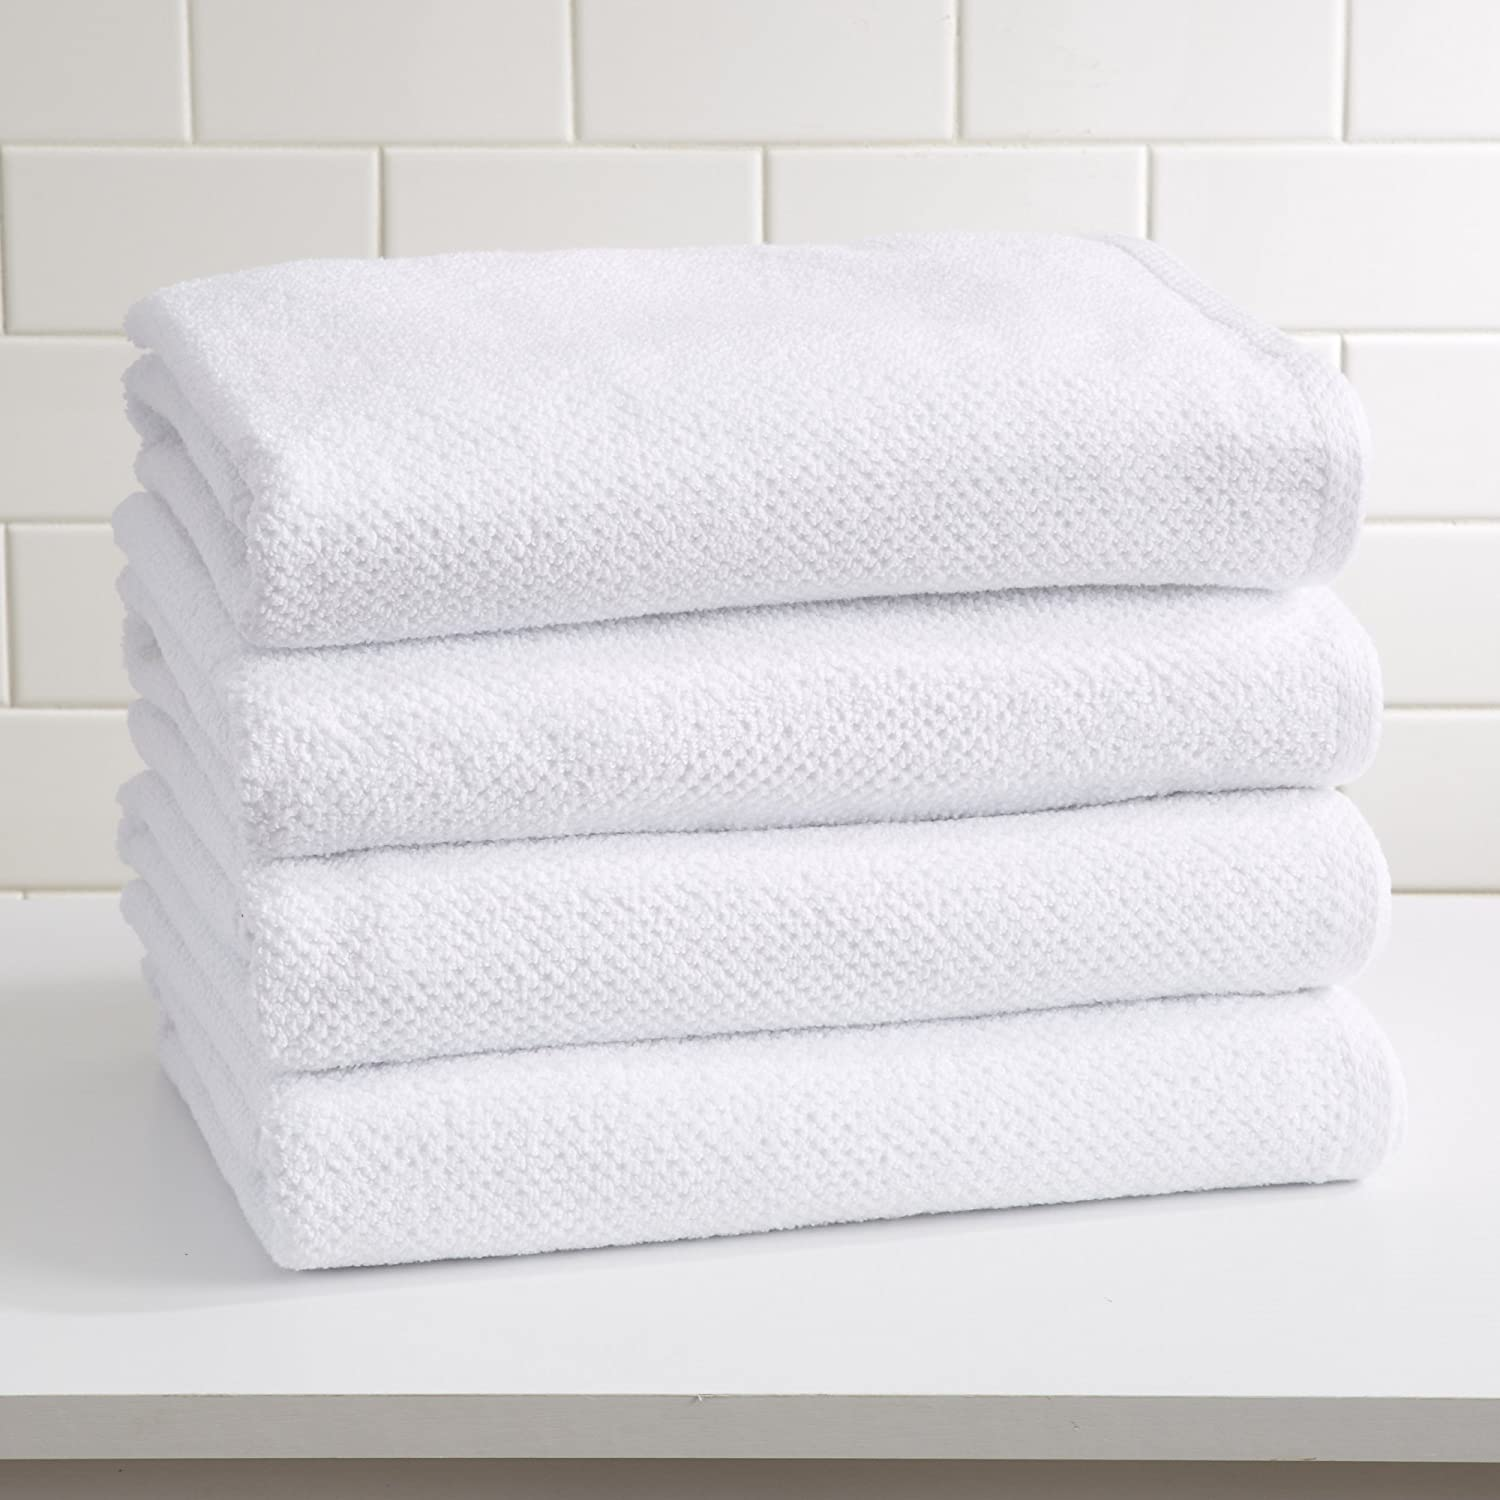 100% Cotton Quick-Dry Bath Towel Set (30 x 52 inches) Highly Absorbent, Textured Popcorn Weave Bath Towels. Acacia Collection (Set of 4, Optic White)